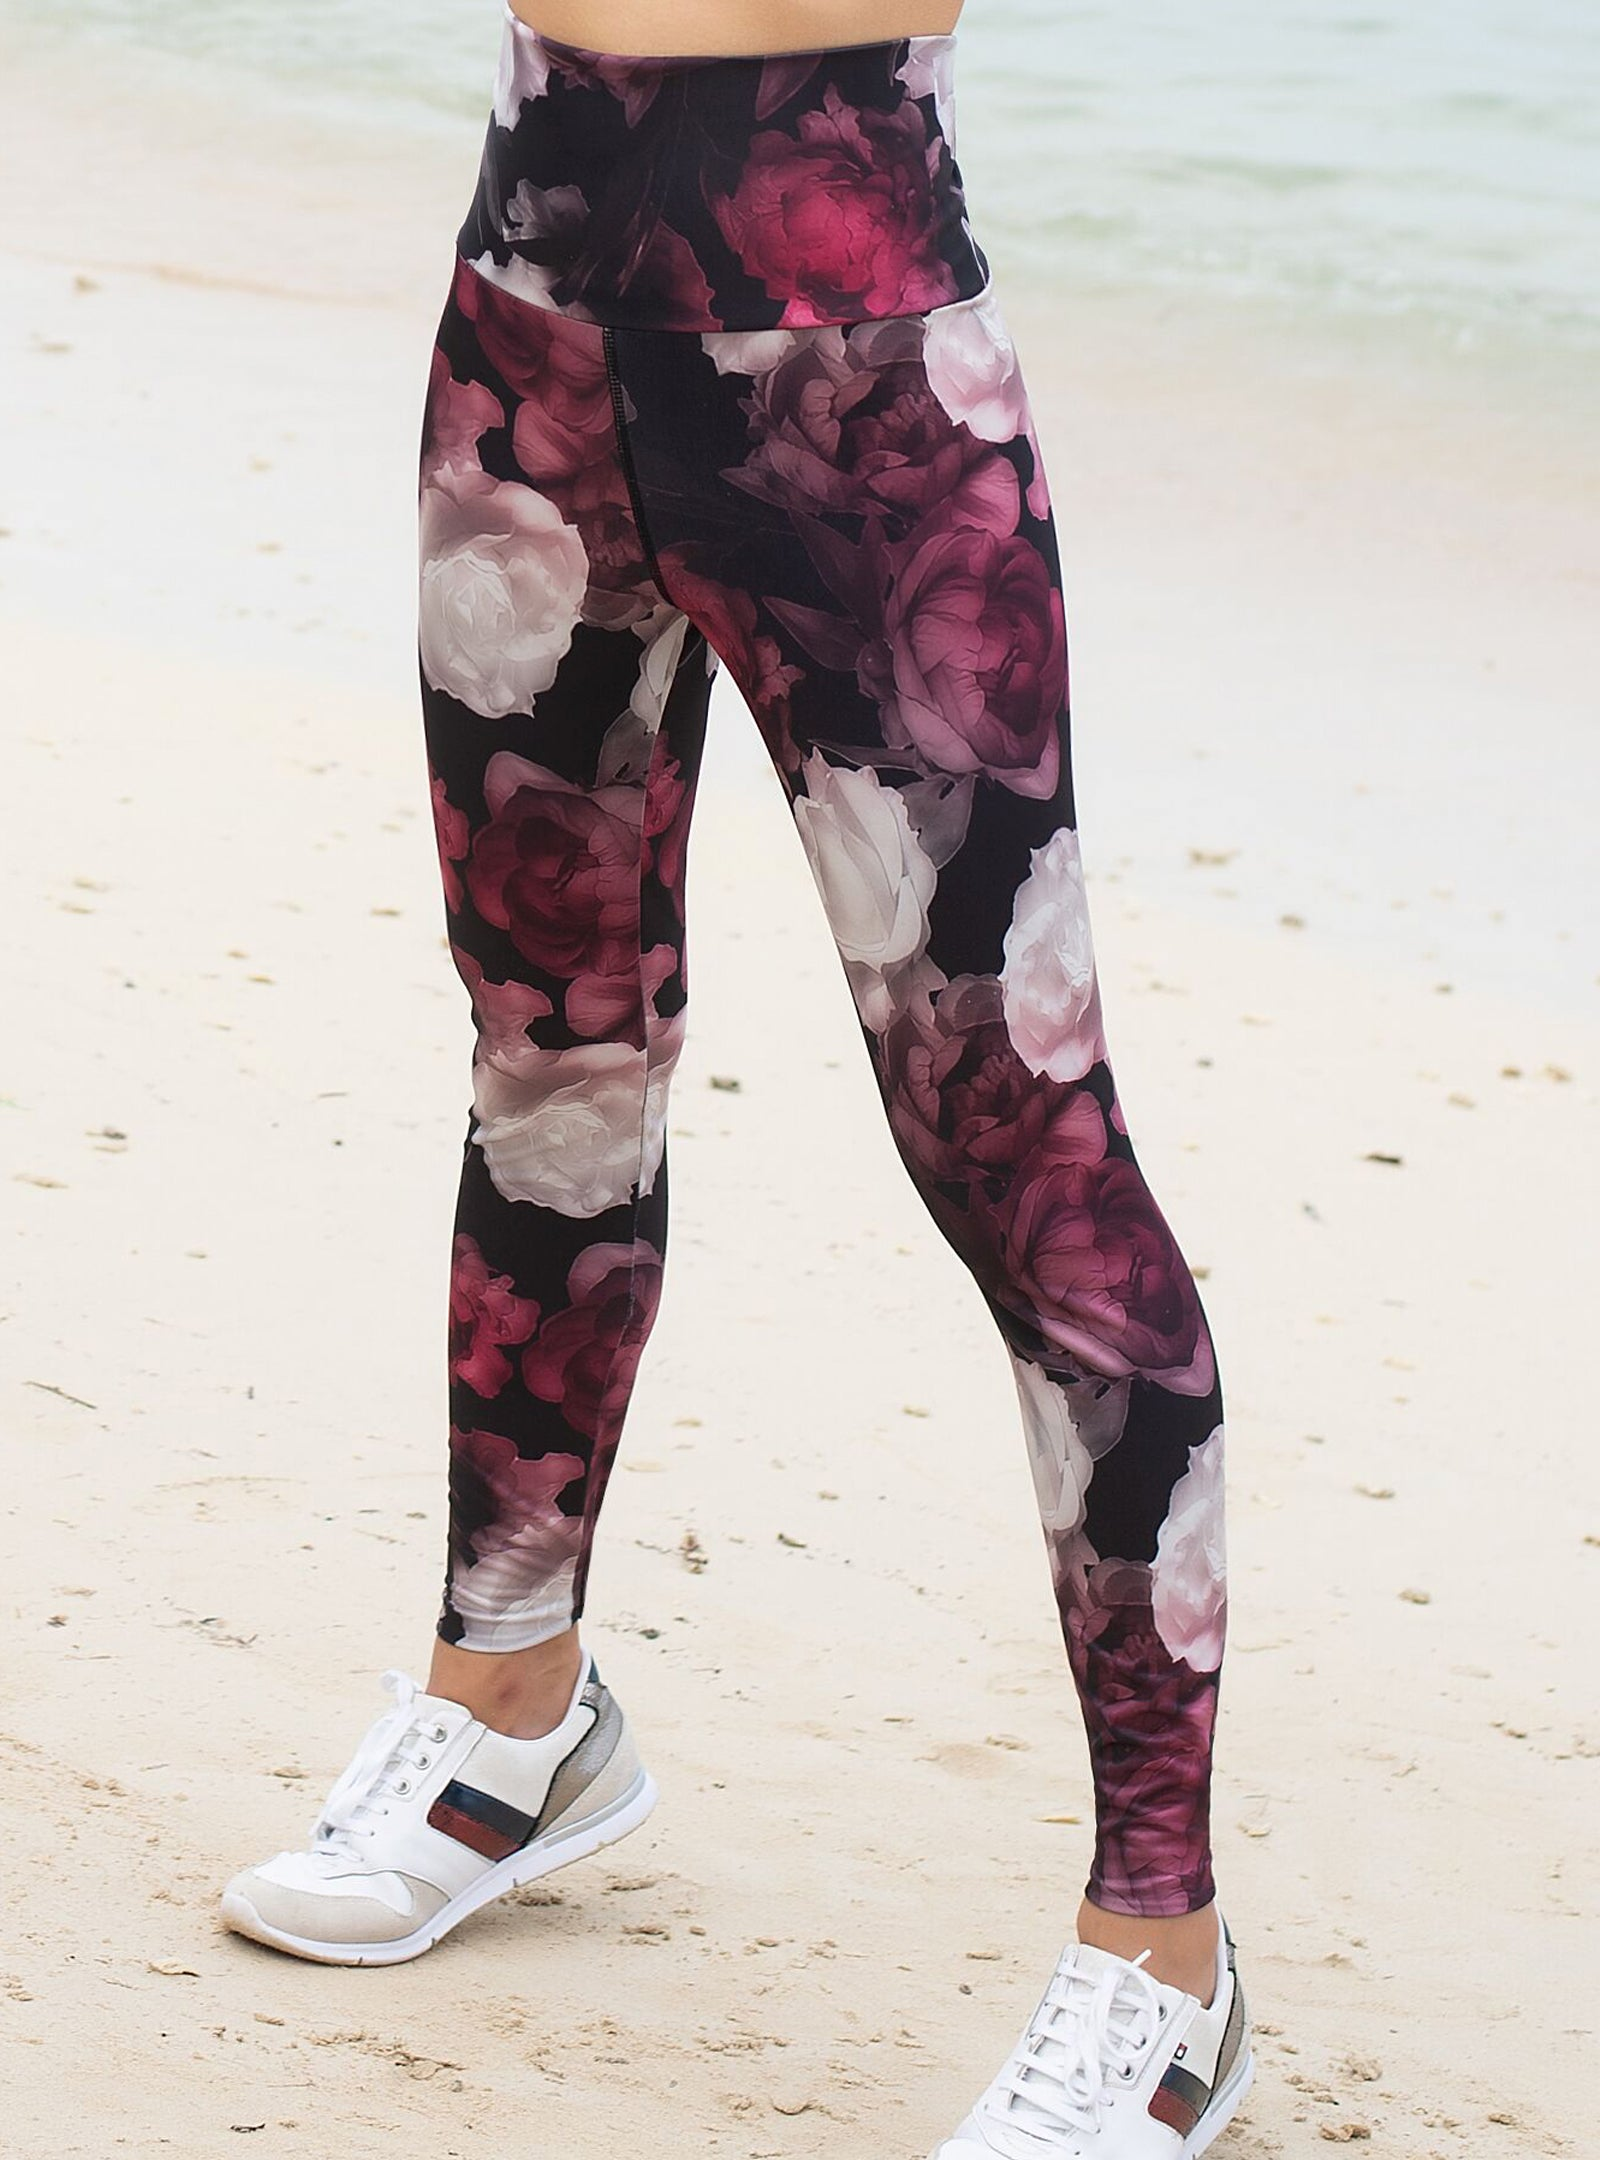 Leggings Ref: 4594